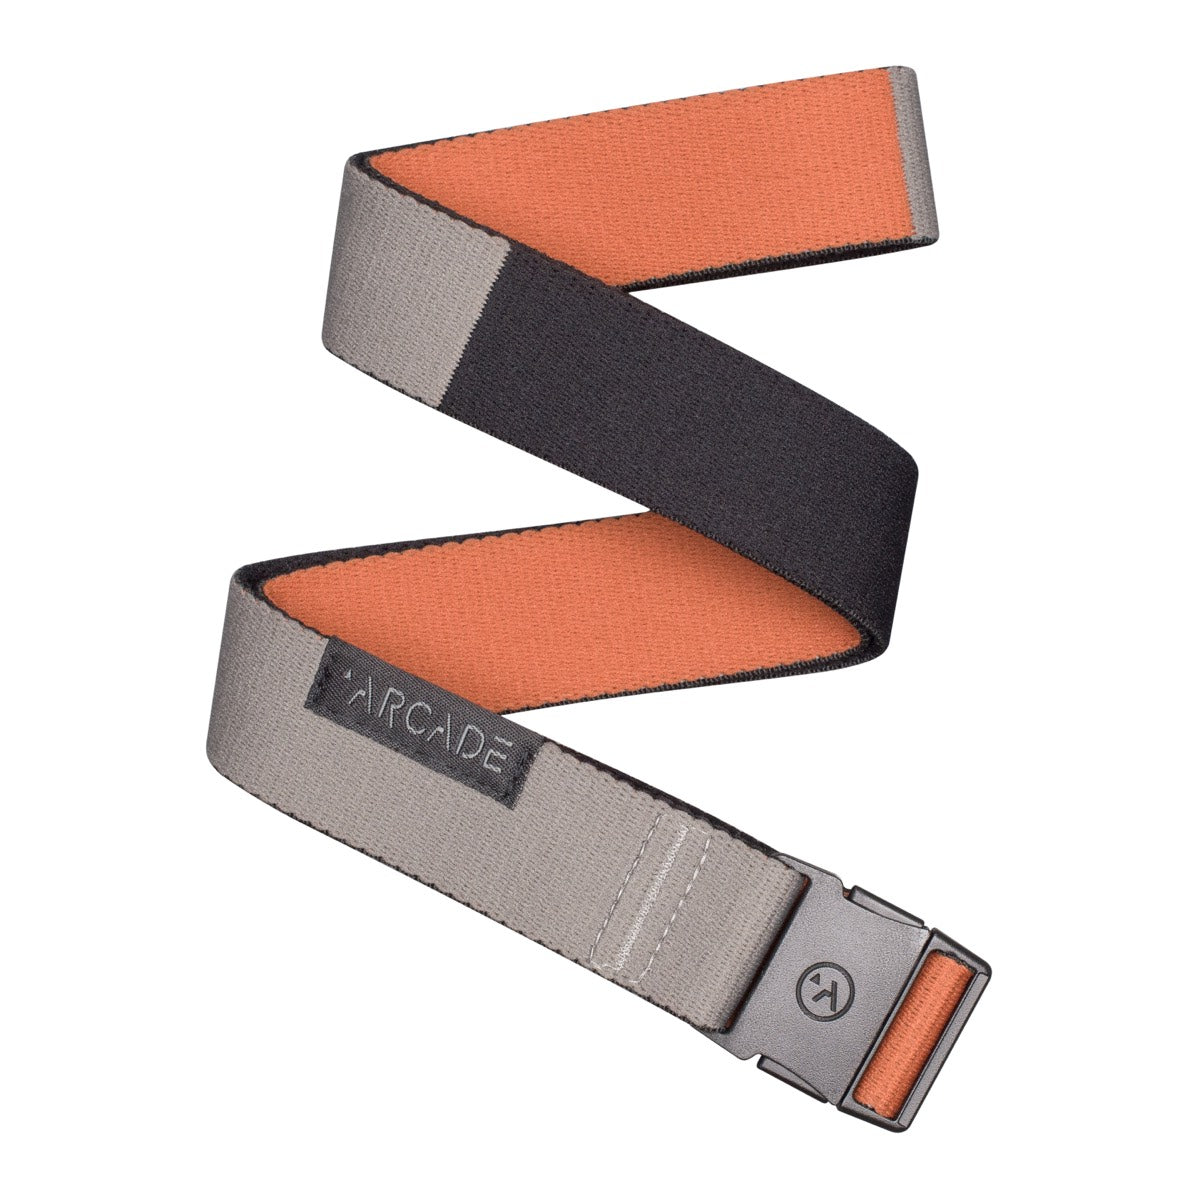 Arcade Ranger Slim Belt - Deep Copper/Colour Block image 2